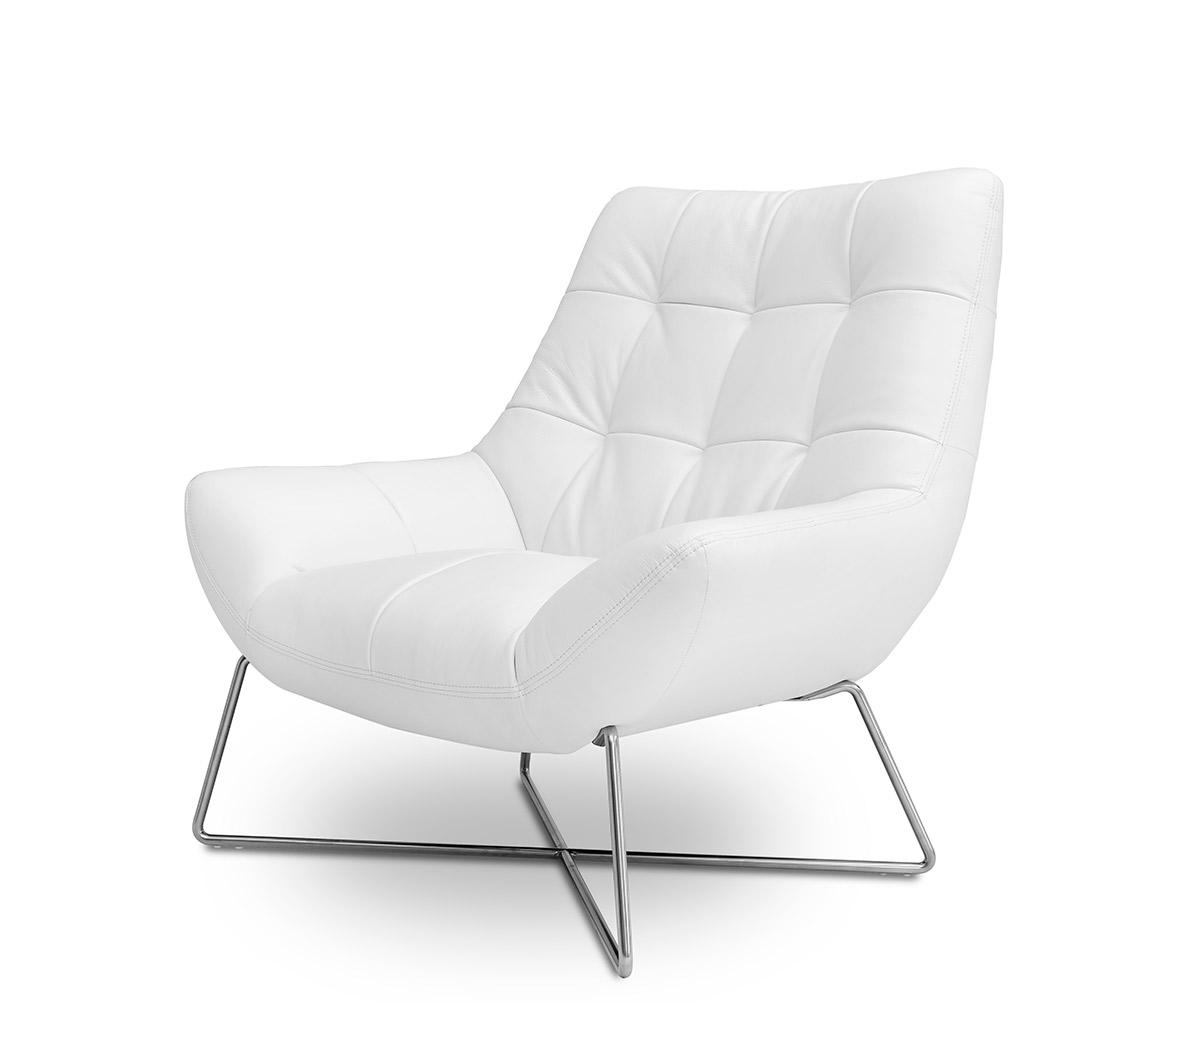 Divani casa a728 modern white occasional chair for White chair